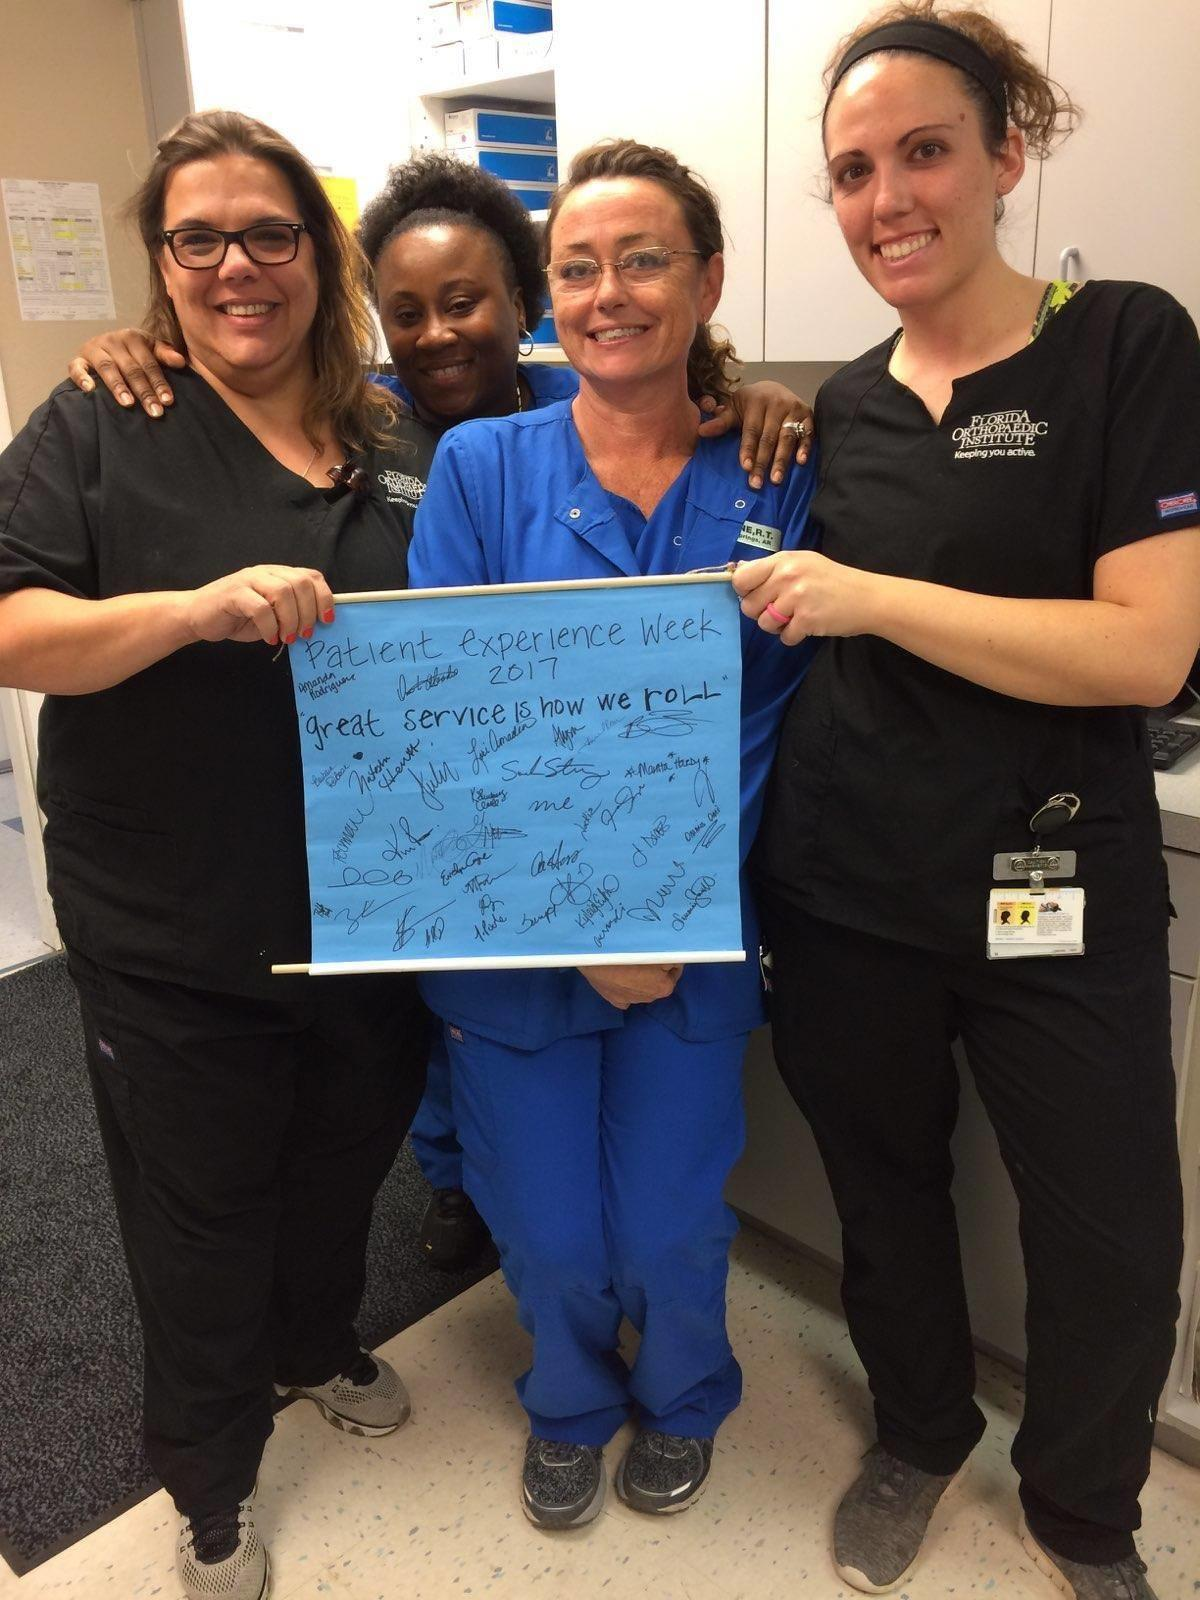 National Customer Service Week - Patient Experience